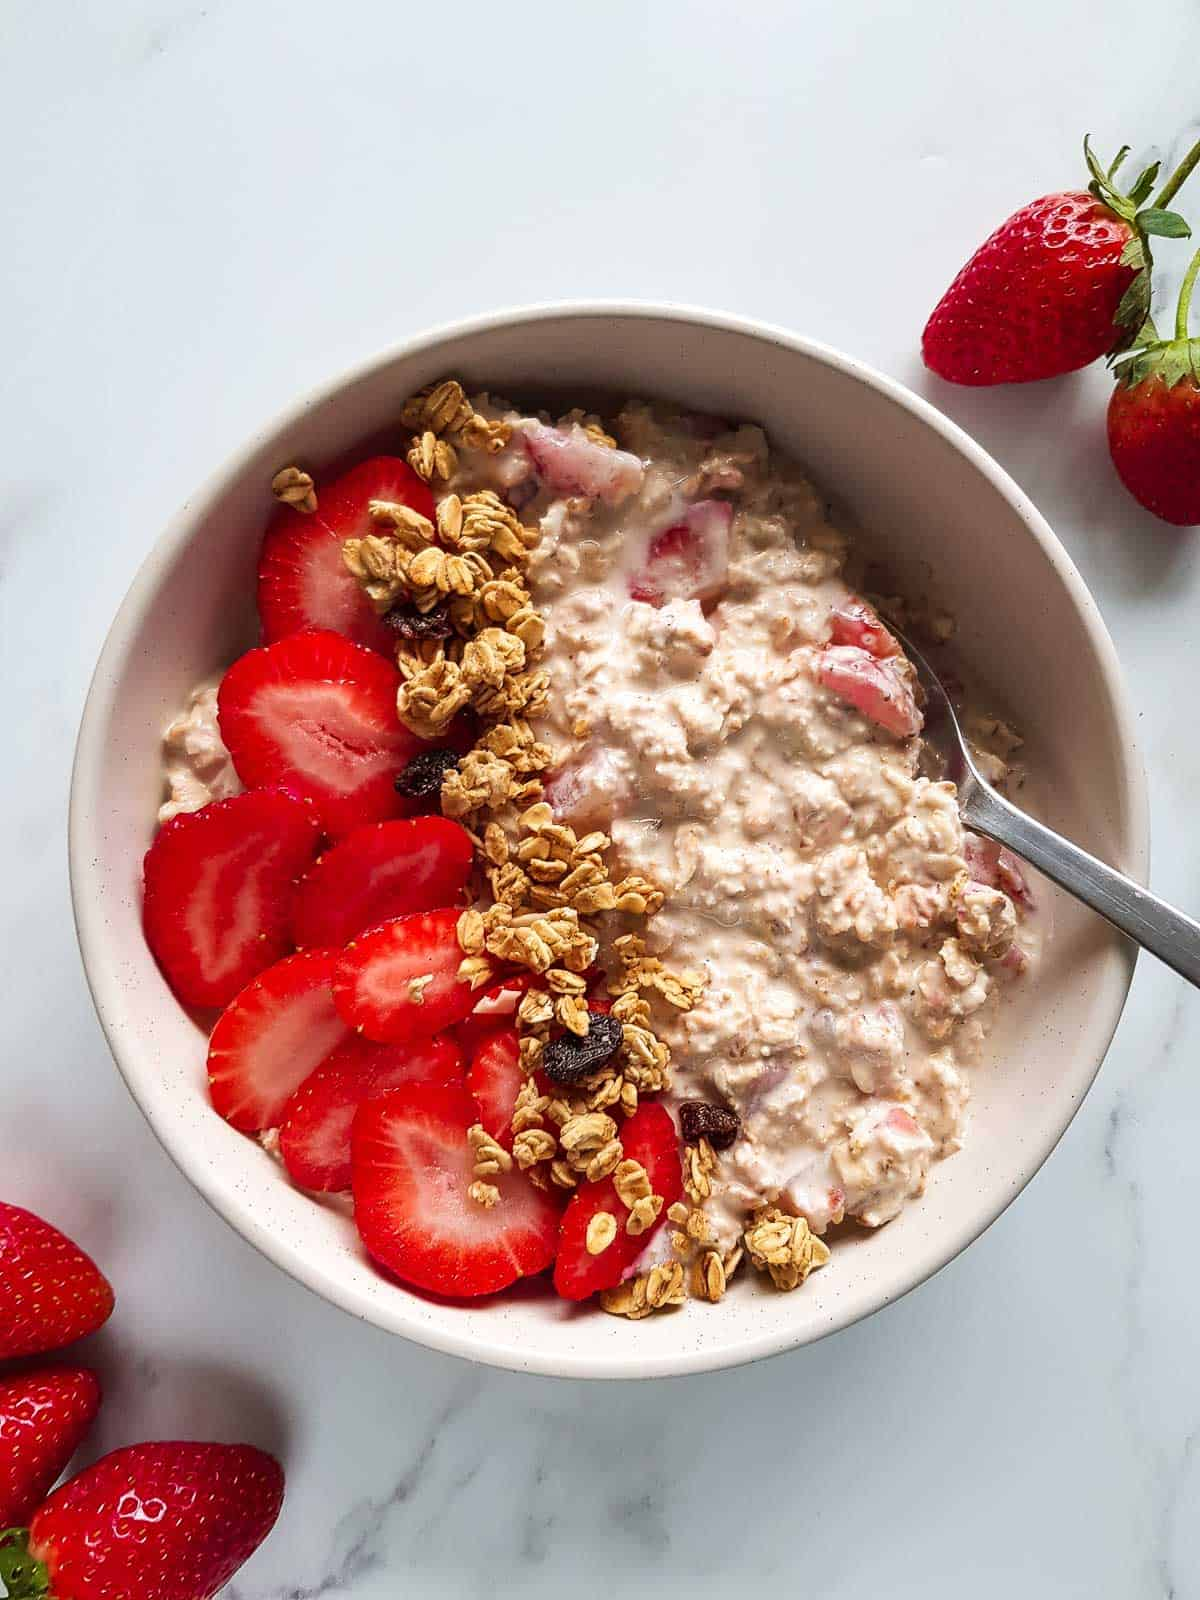 A bowl of strawberry overnight oats topped with strawberries and granola.